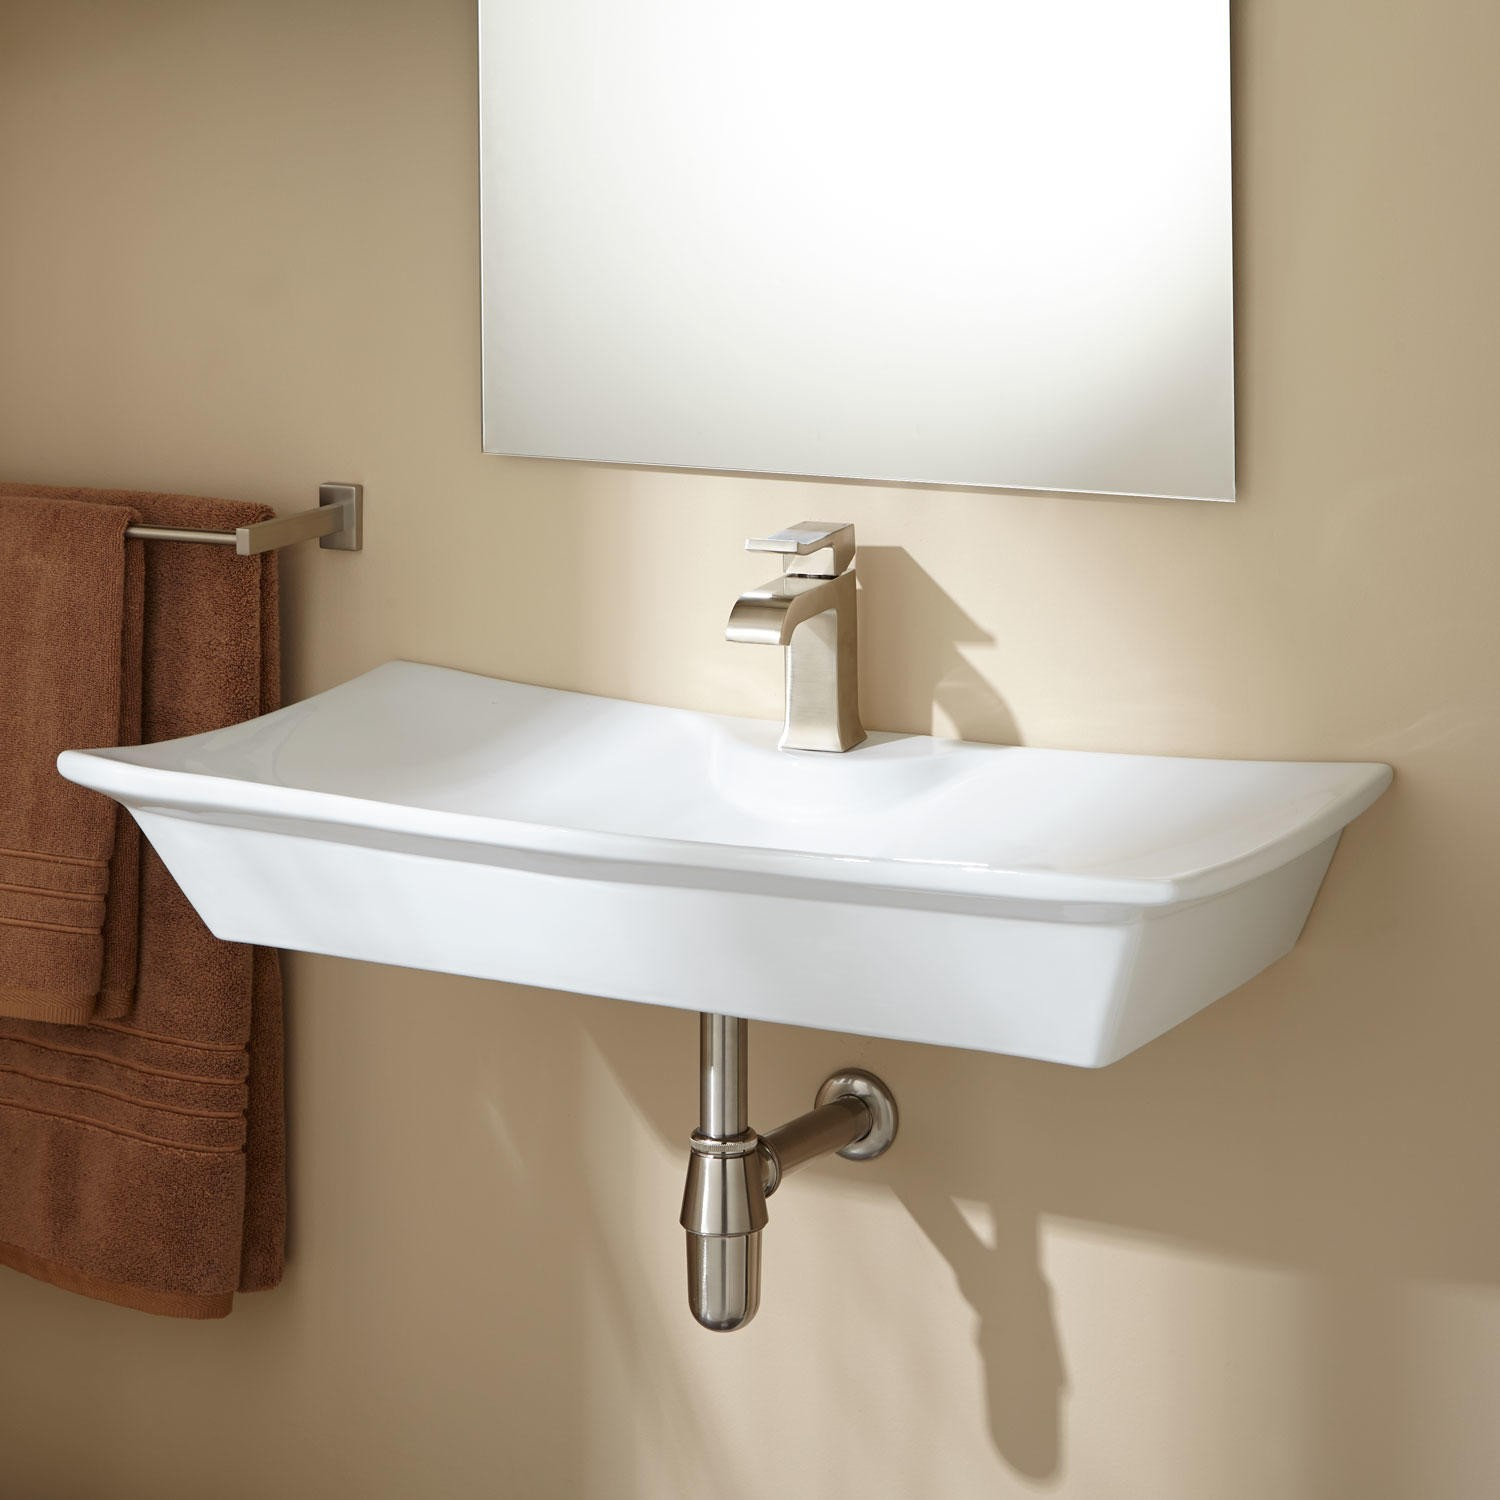 Charming White Small Wall Mount Sink With Mirror And Towel Holder